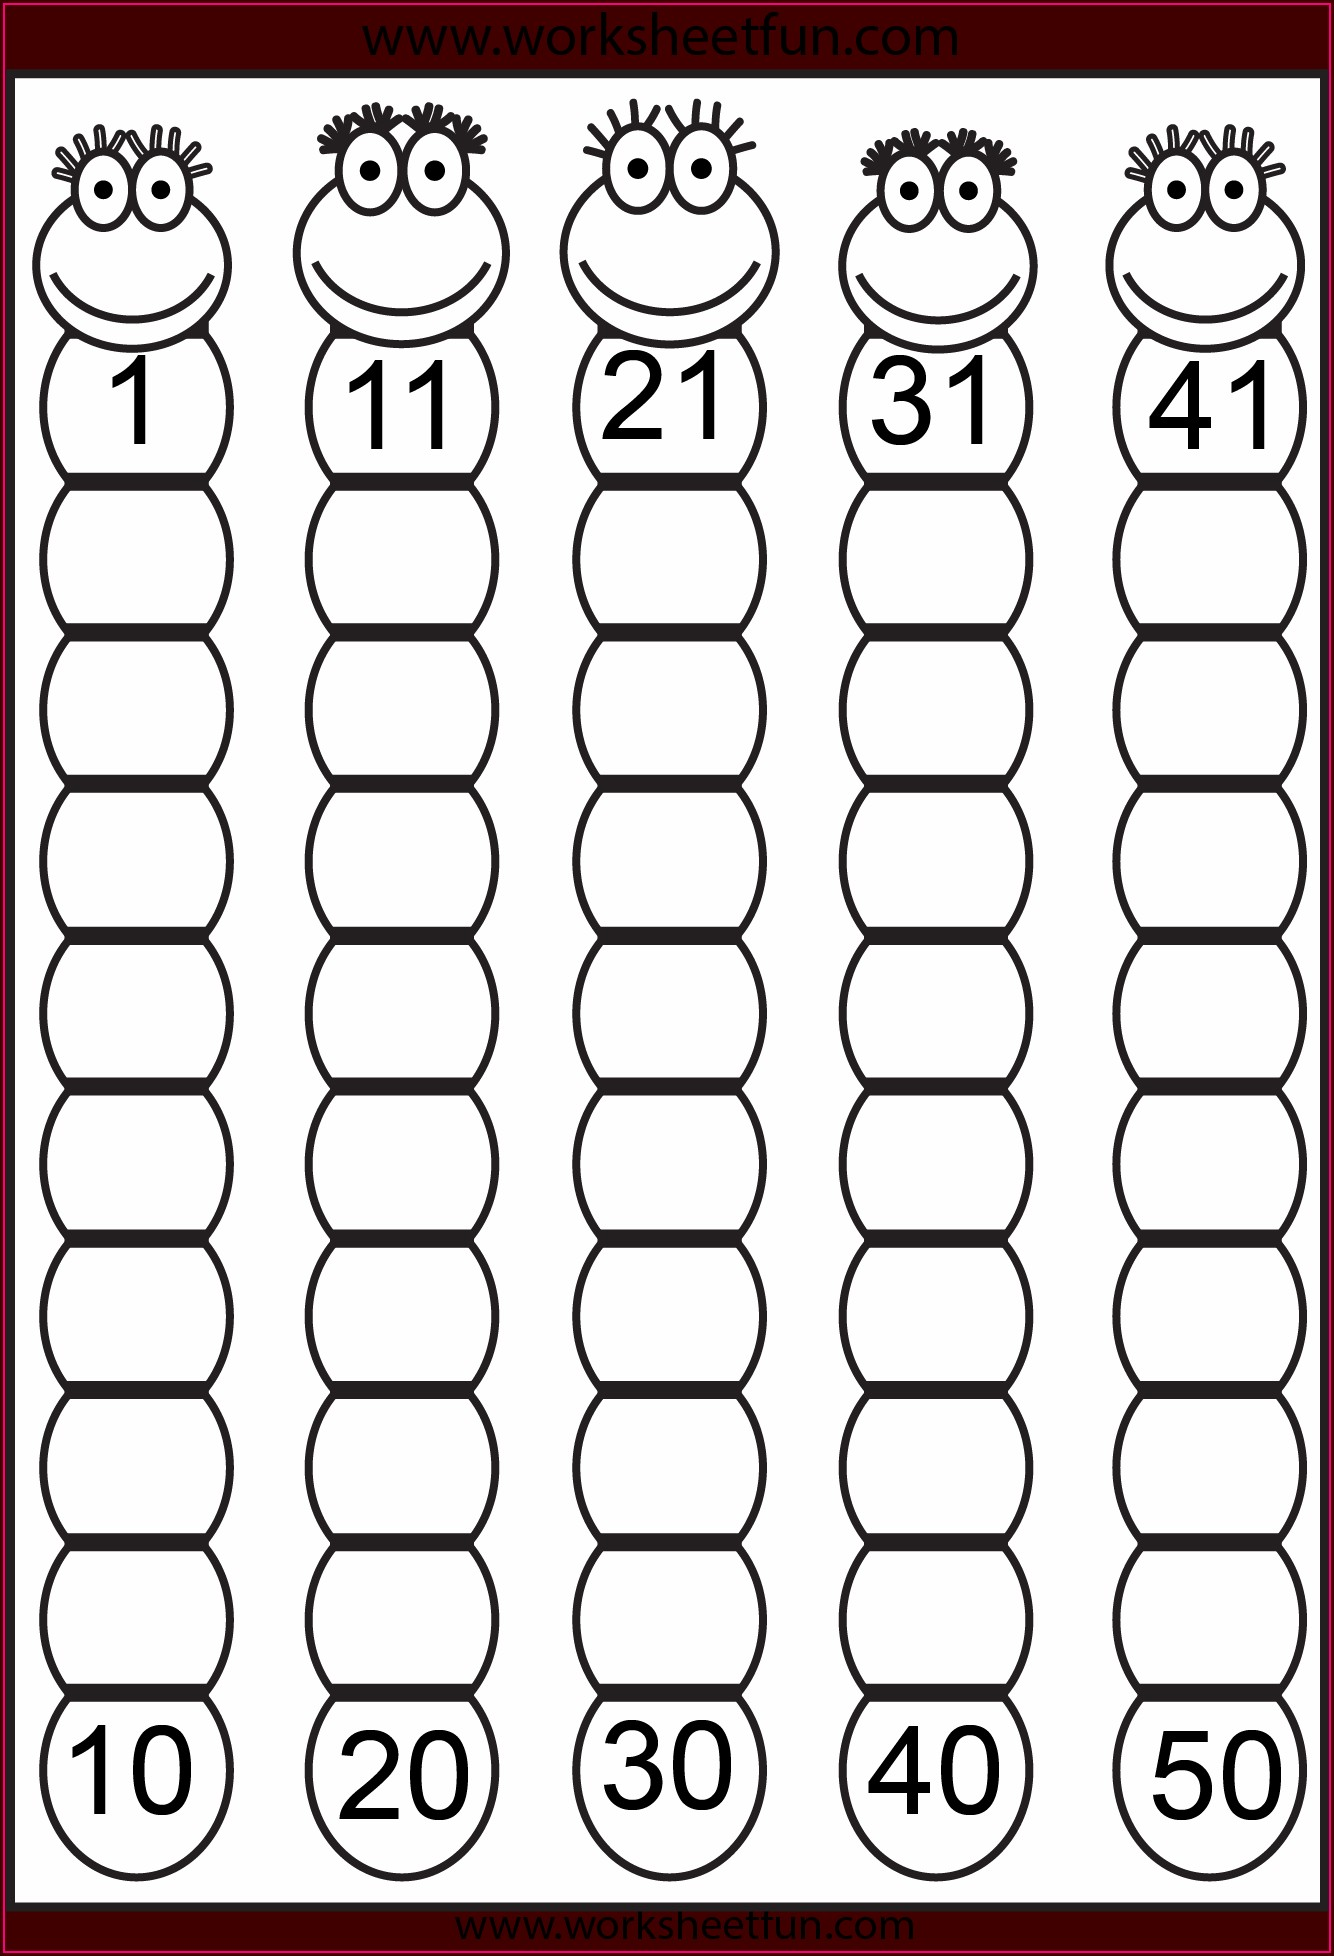 Kindergarten Missing Number Worksheets 1 50